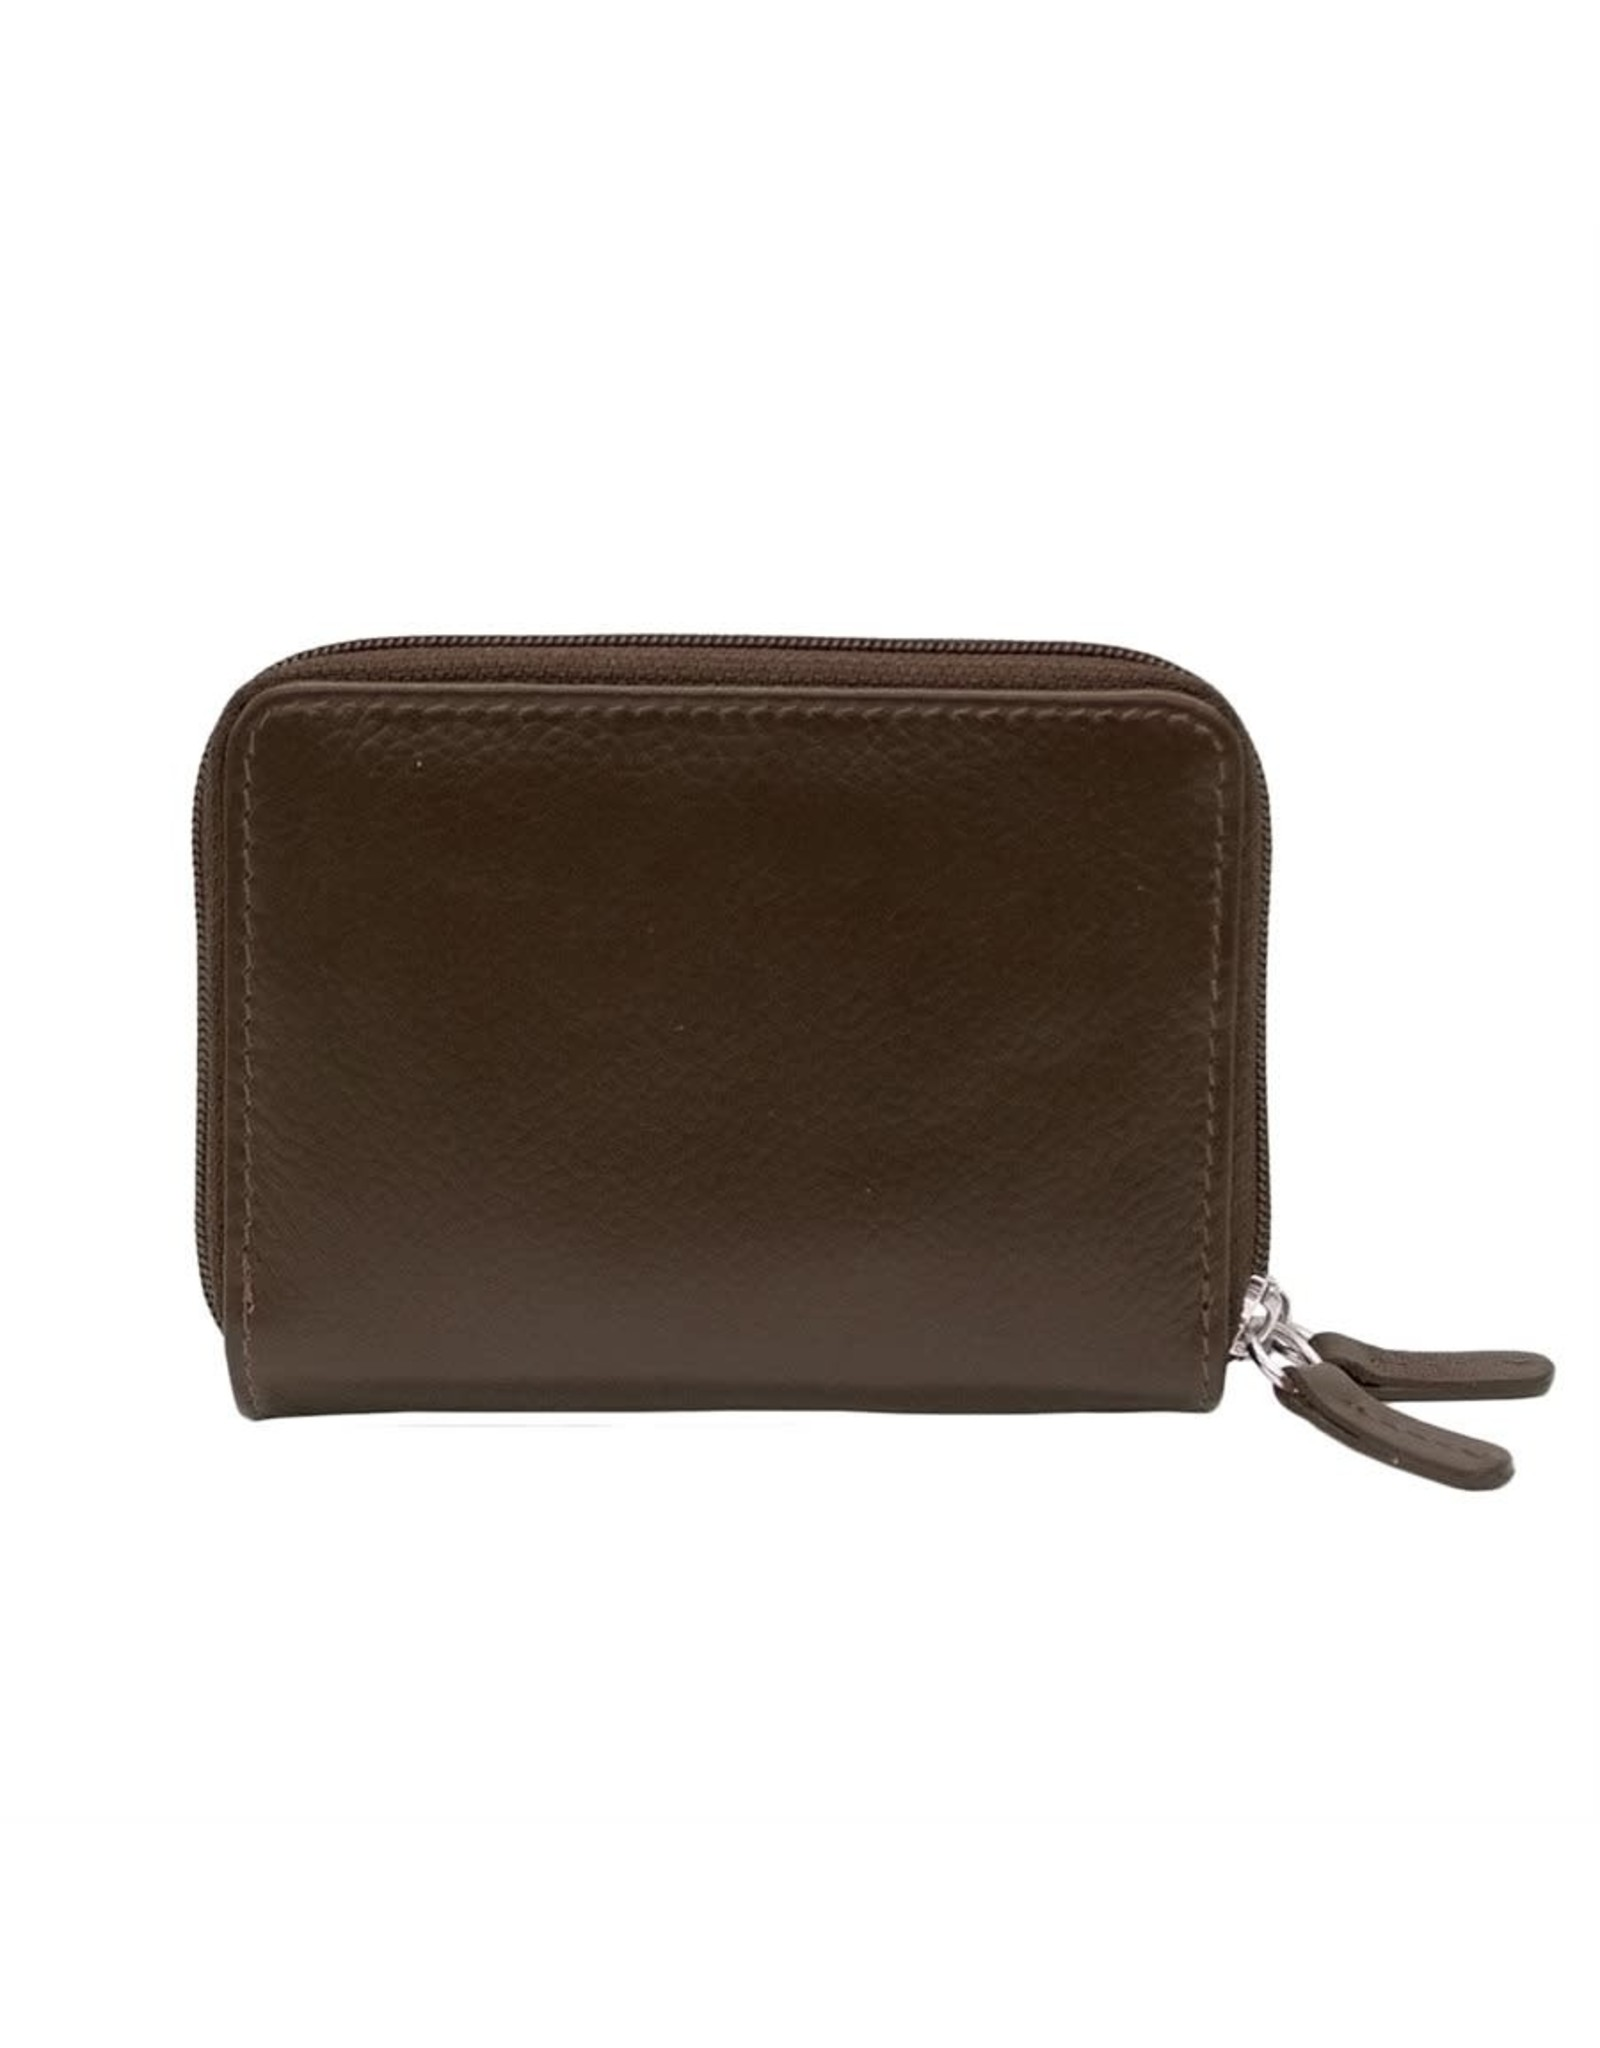 Leather Handbags and Accessories 6714 Brown - RFID Double Zip Accordion Card Holder